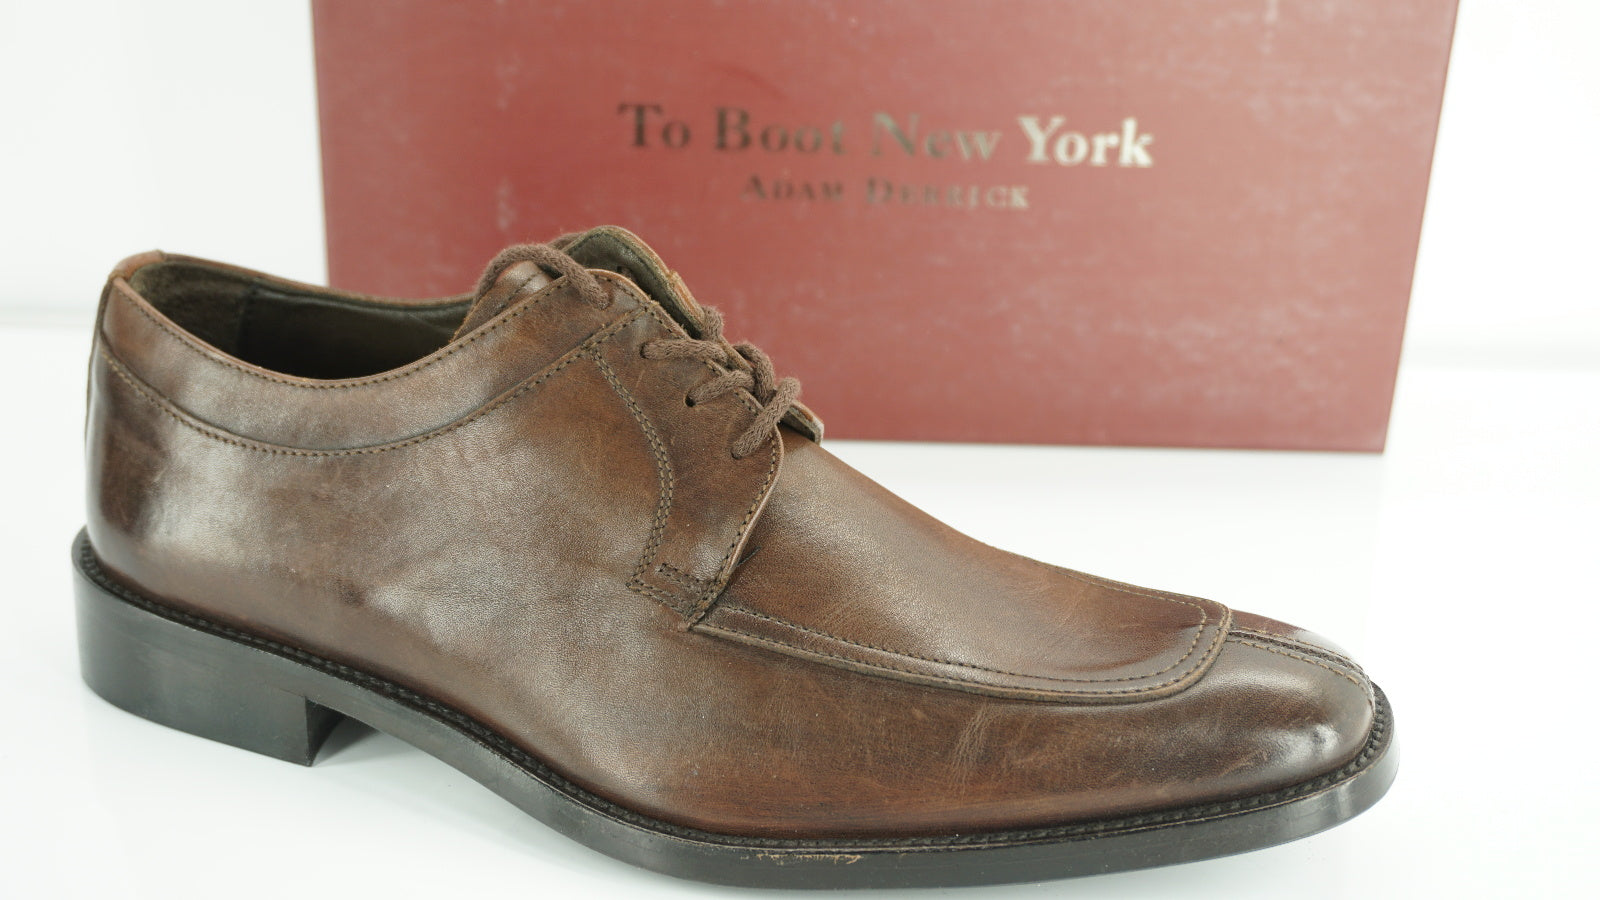 To Boot New York Dexter Split Toe Derby Oxford Shoes Size 9.5 M Lace Up $350